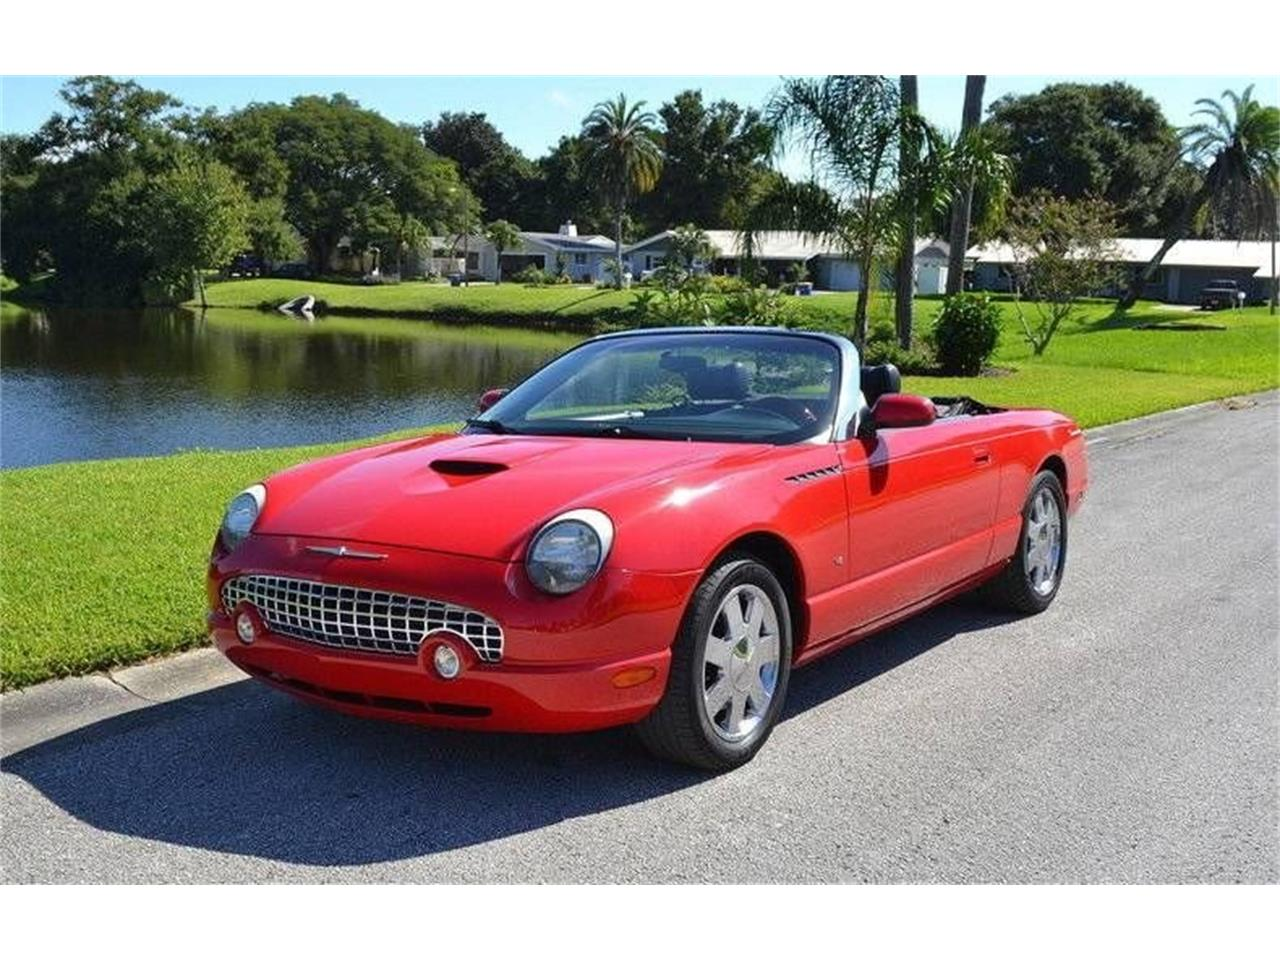 2003 Ford Thunderbird (CC-1300769) for sale in Punta Gorda, Florida